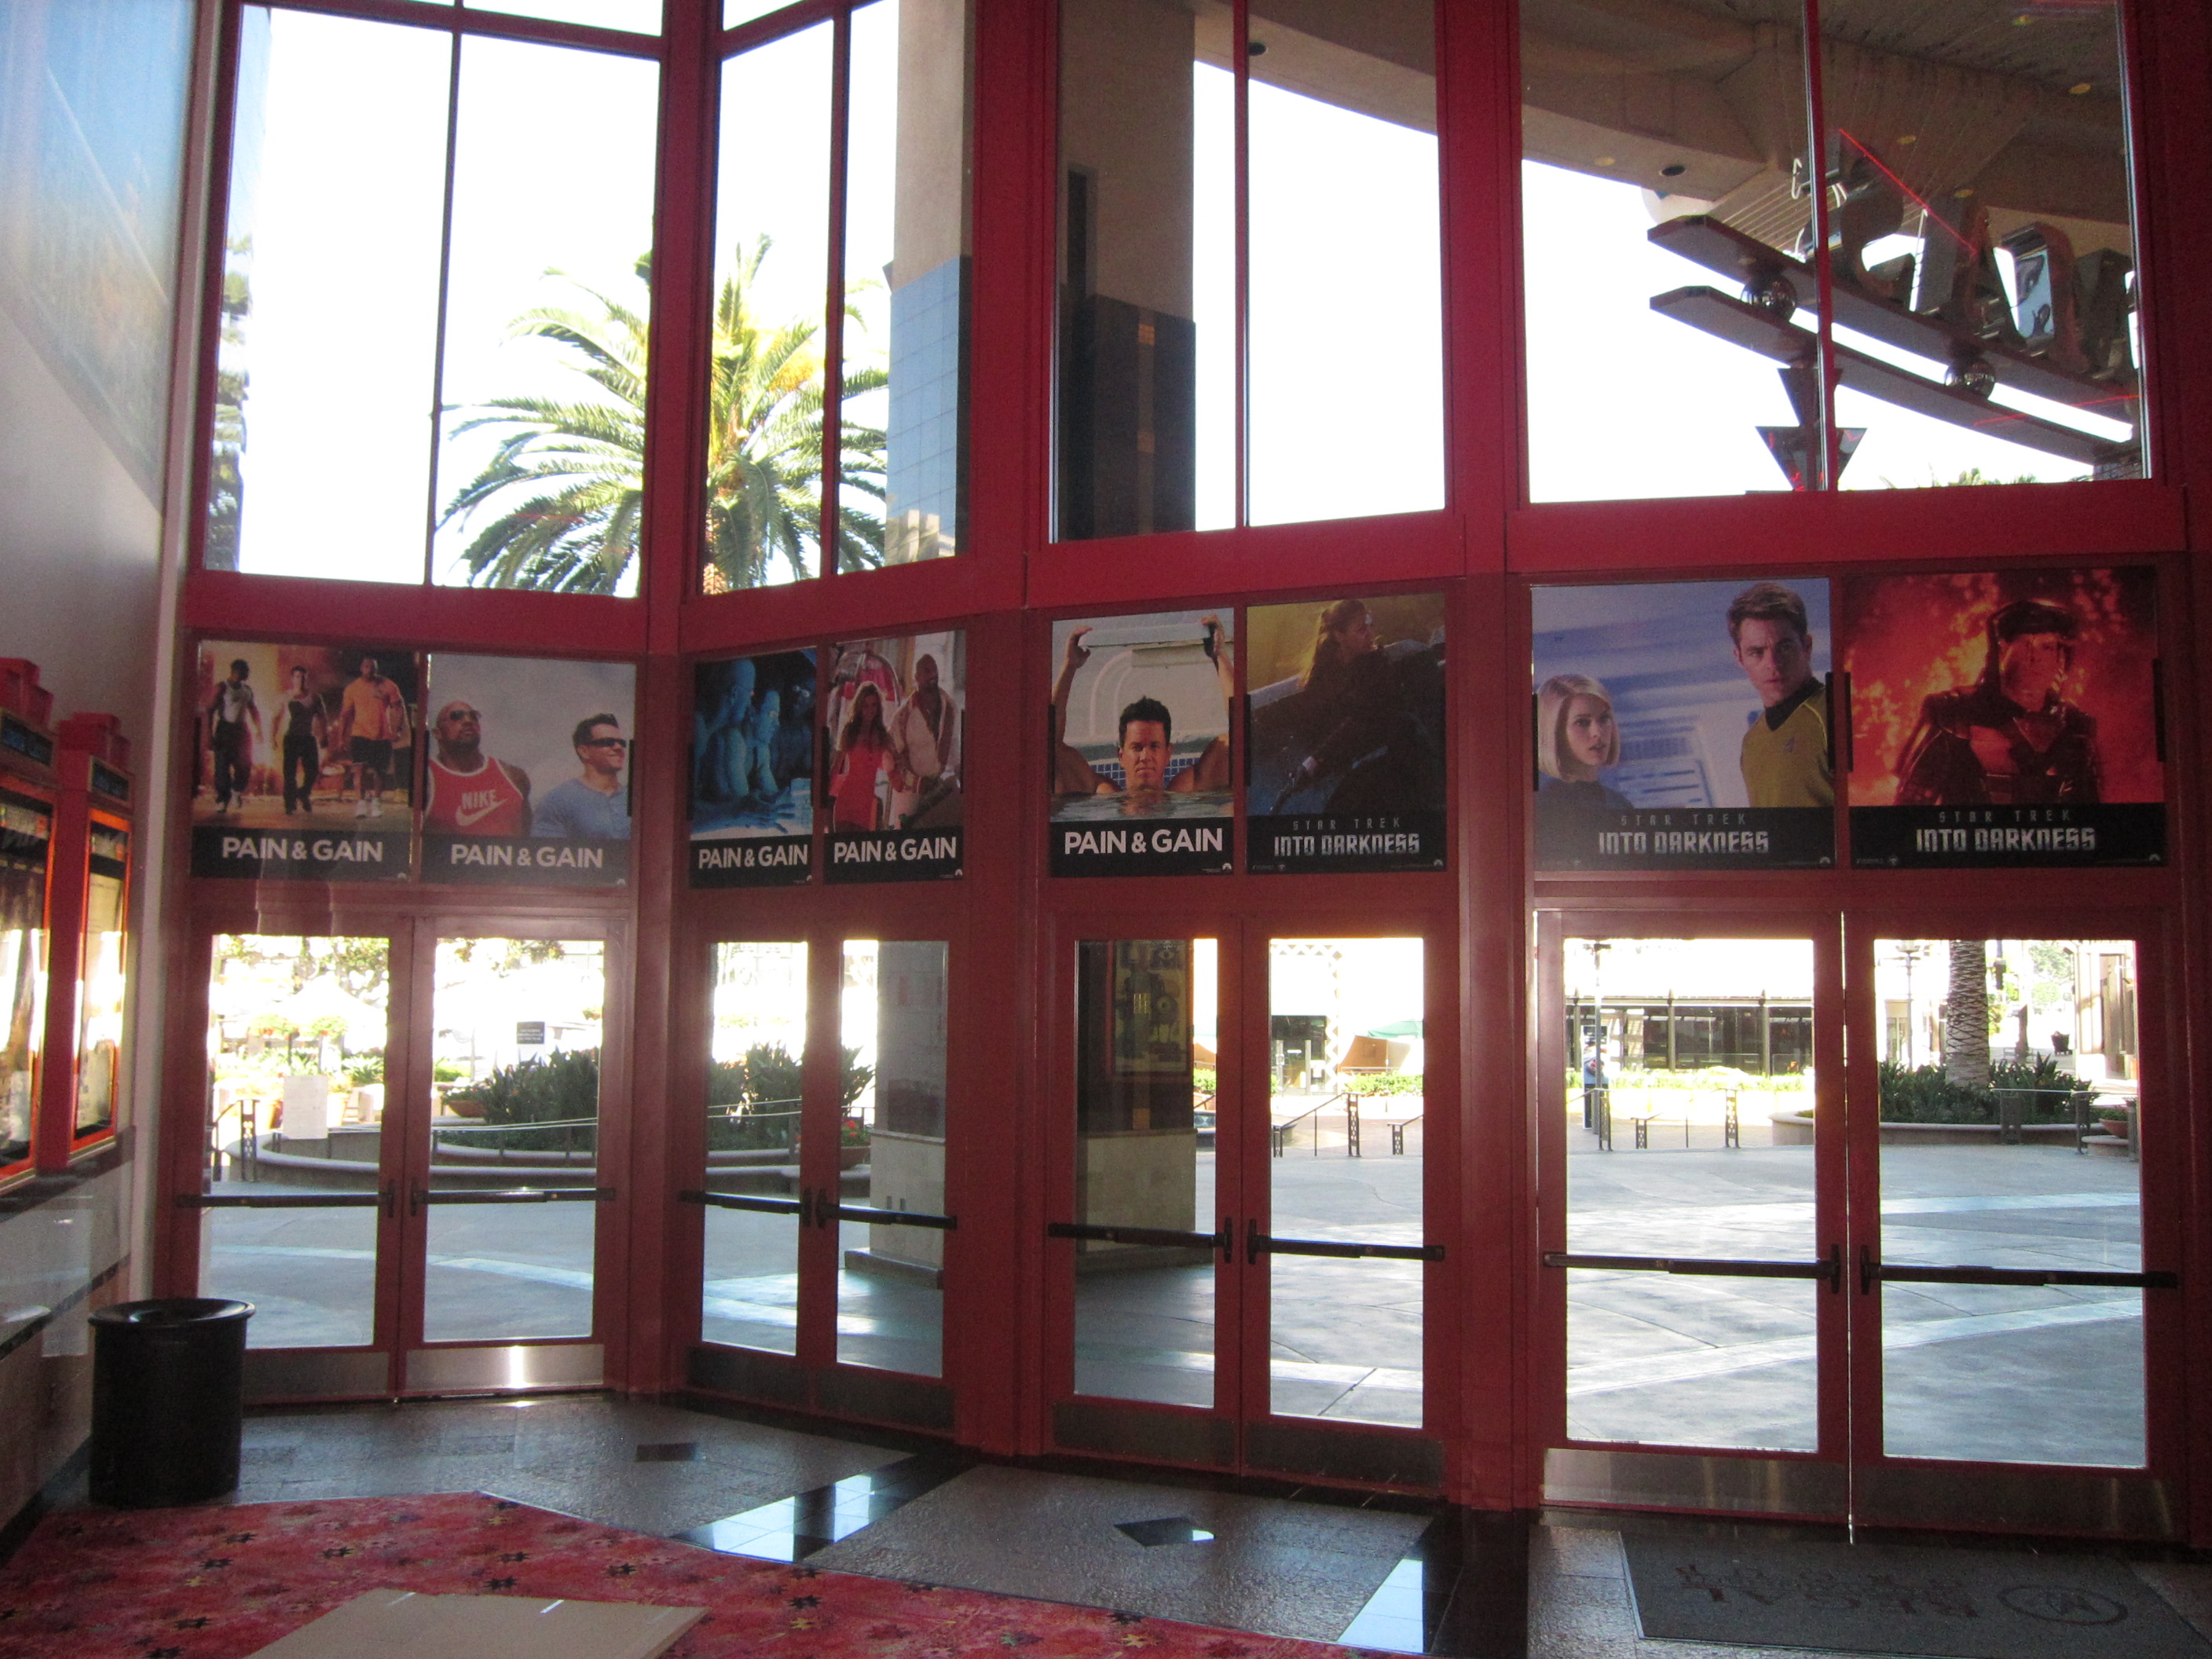 PAIN AND GAIN double sided color photo boards above the doors viewed from inside the theatre lobby.